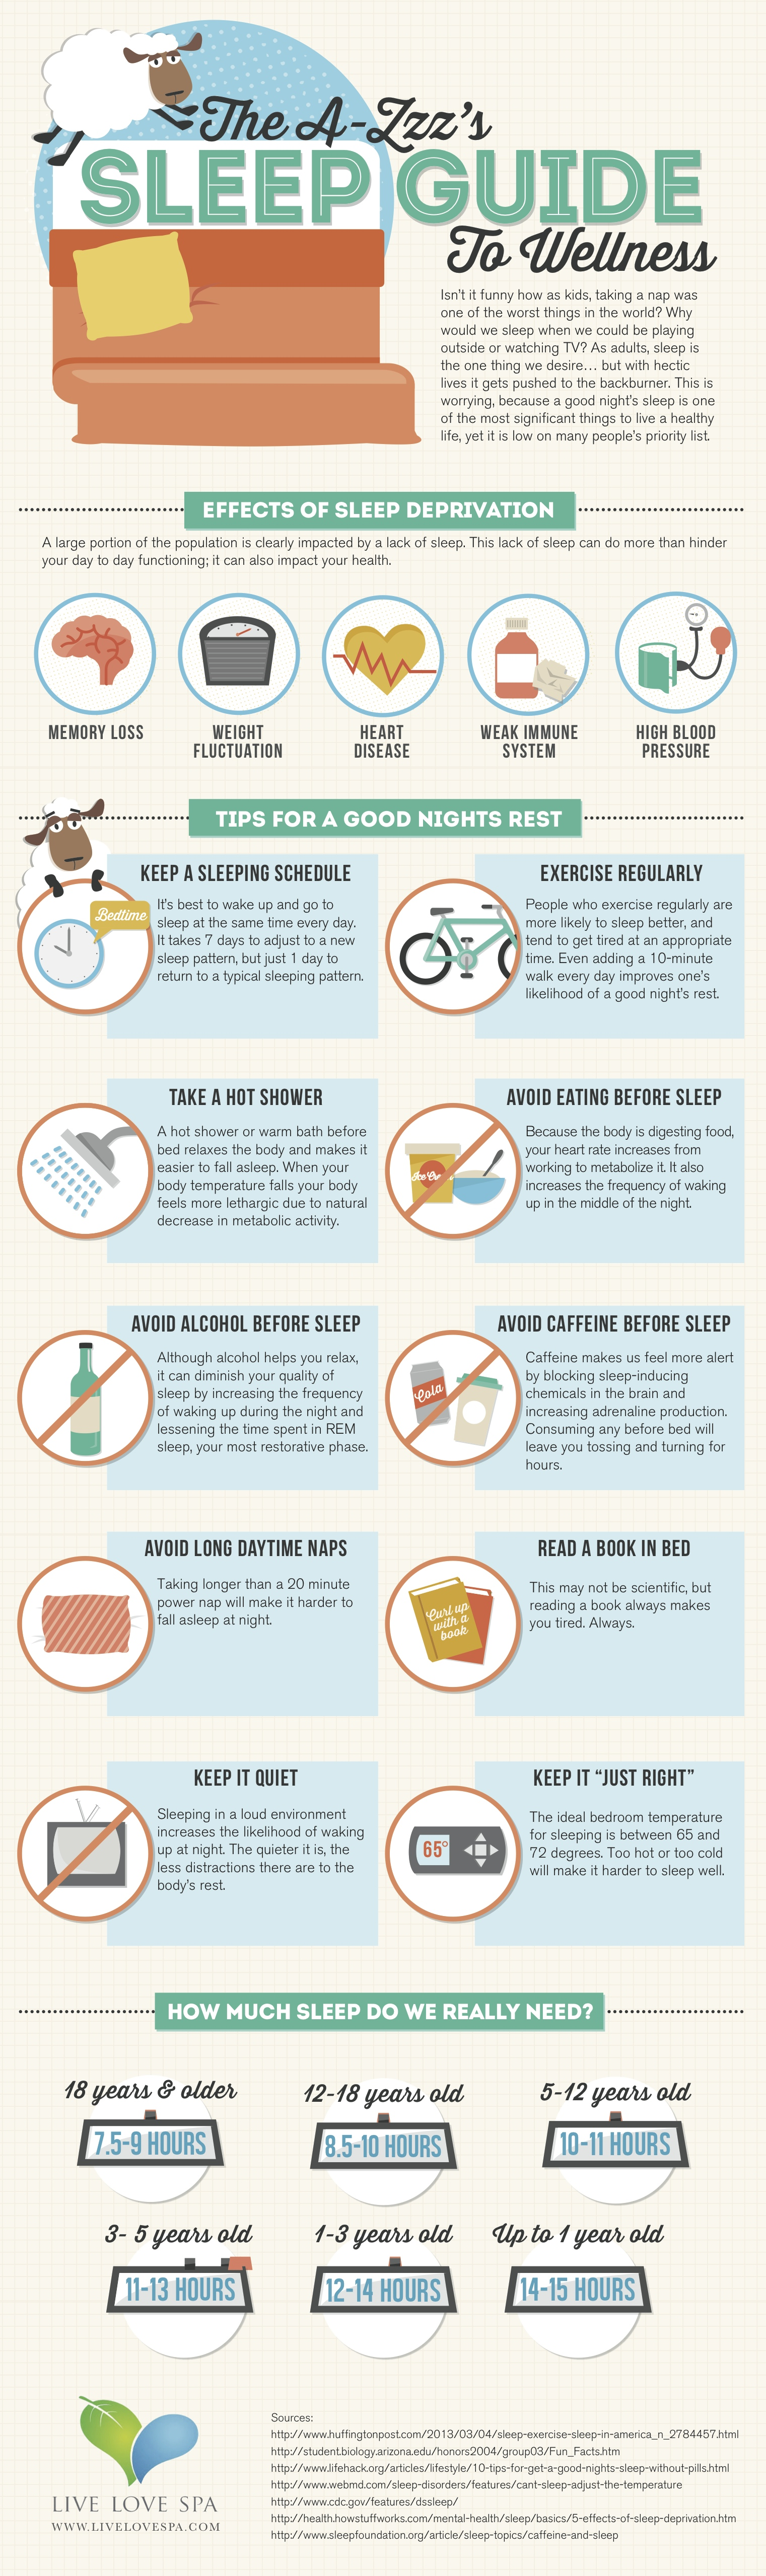 Sleep Guide To Wellness (Infographic)